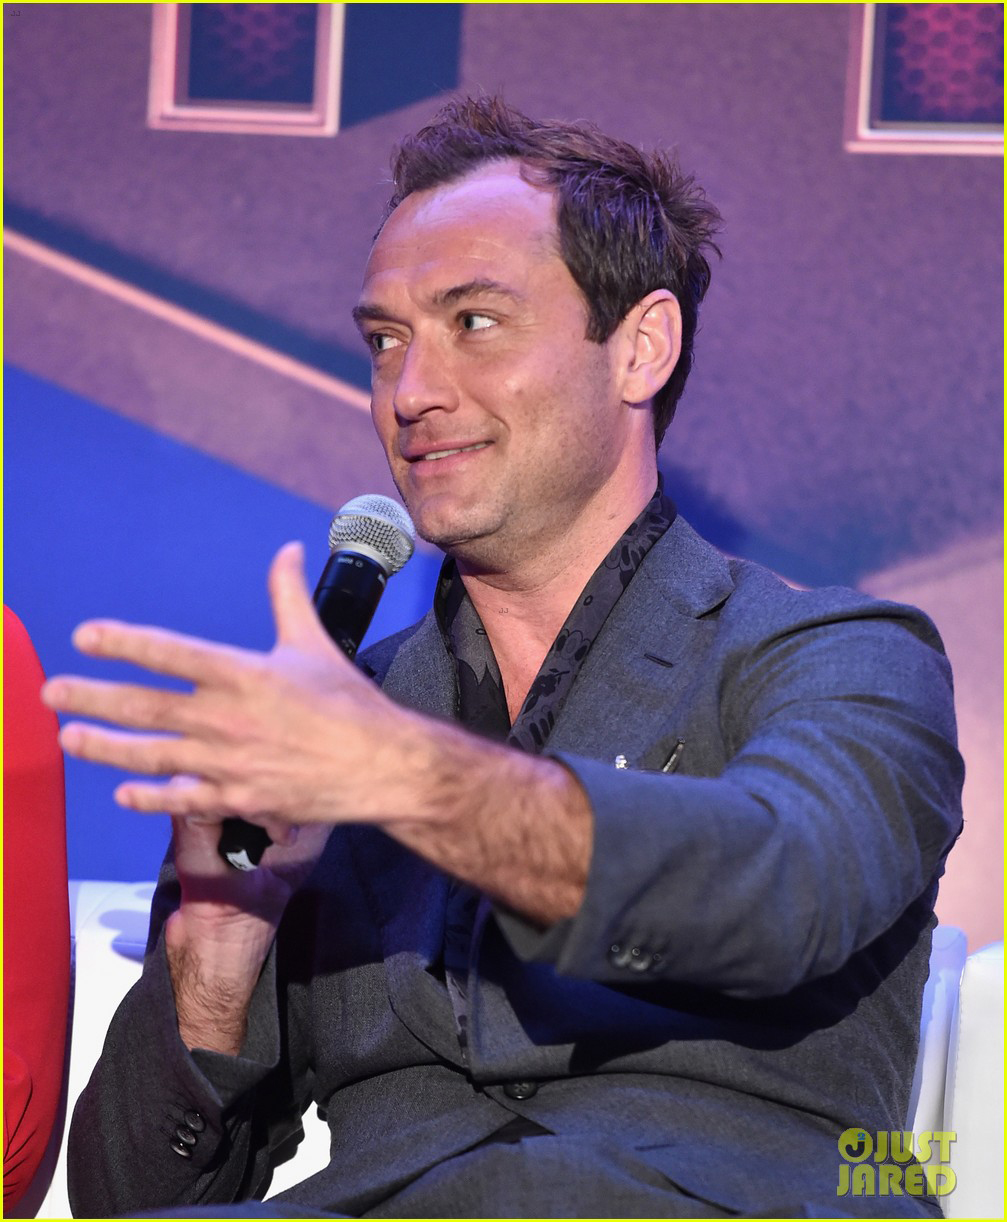 """Jude Law answers questions at the press junket for """"Captain Marvel"""" in L.A."""